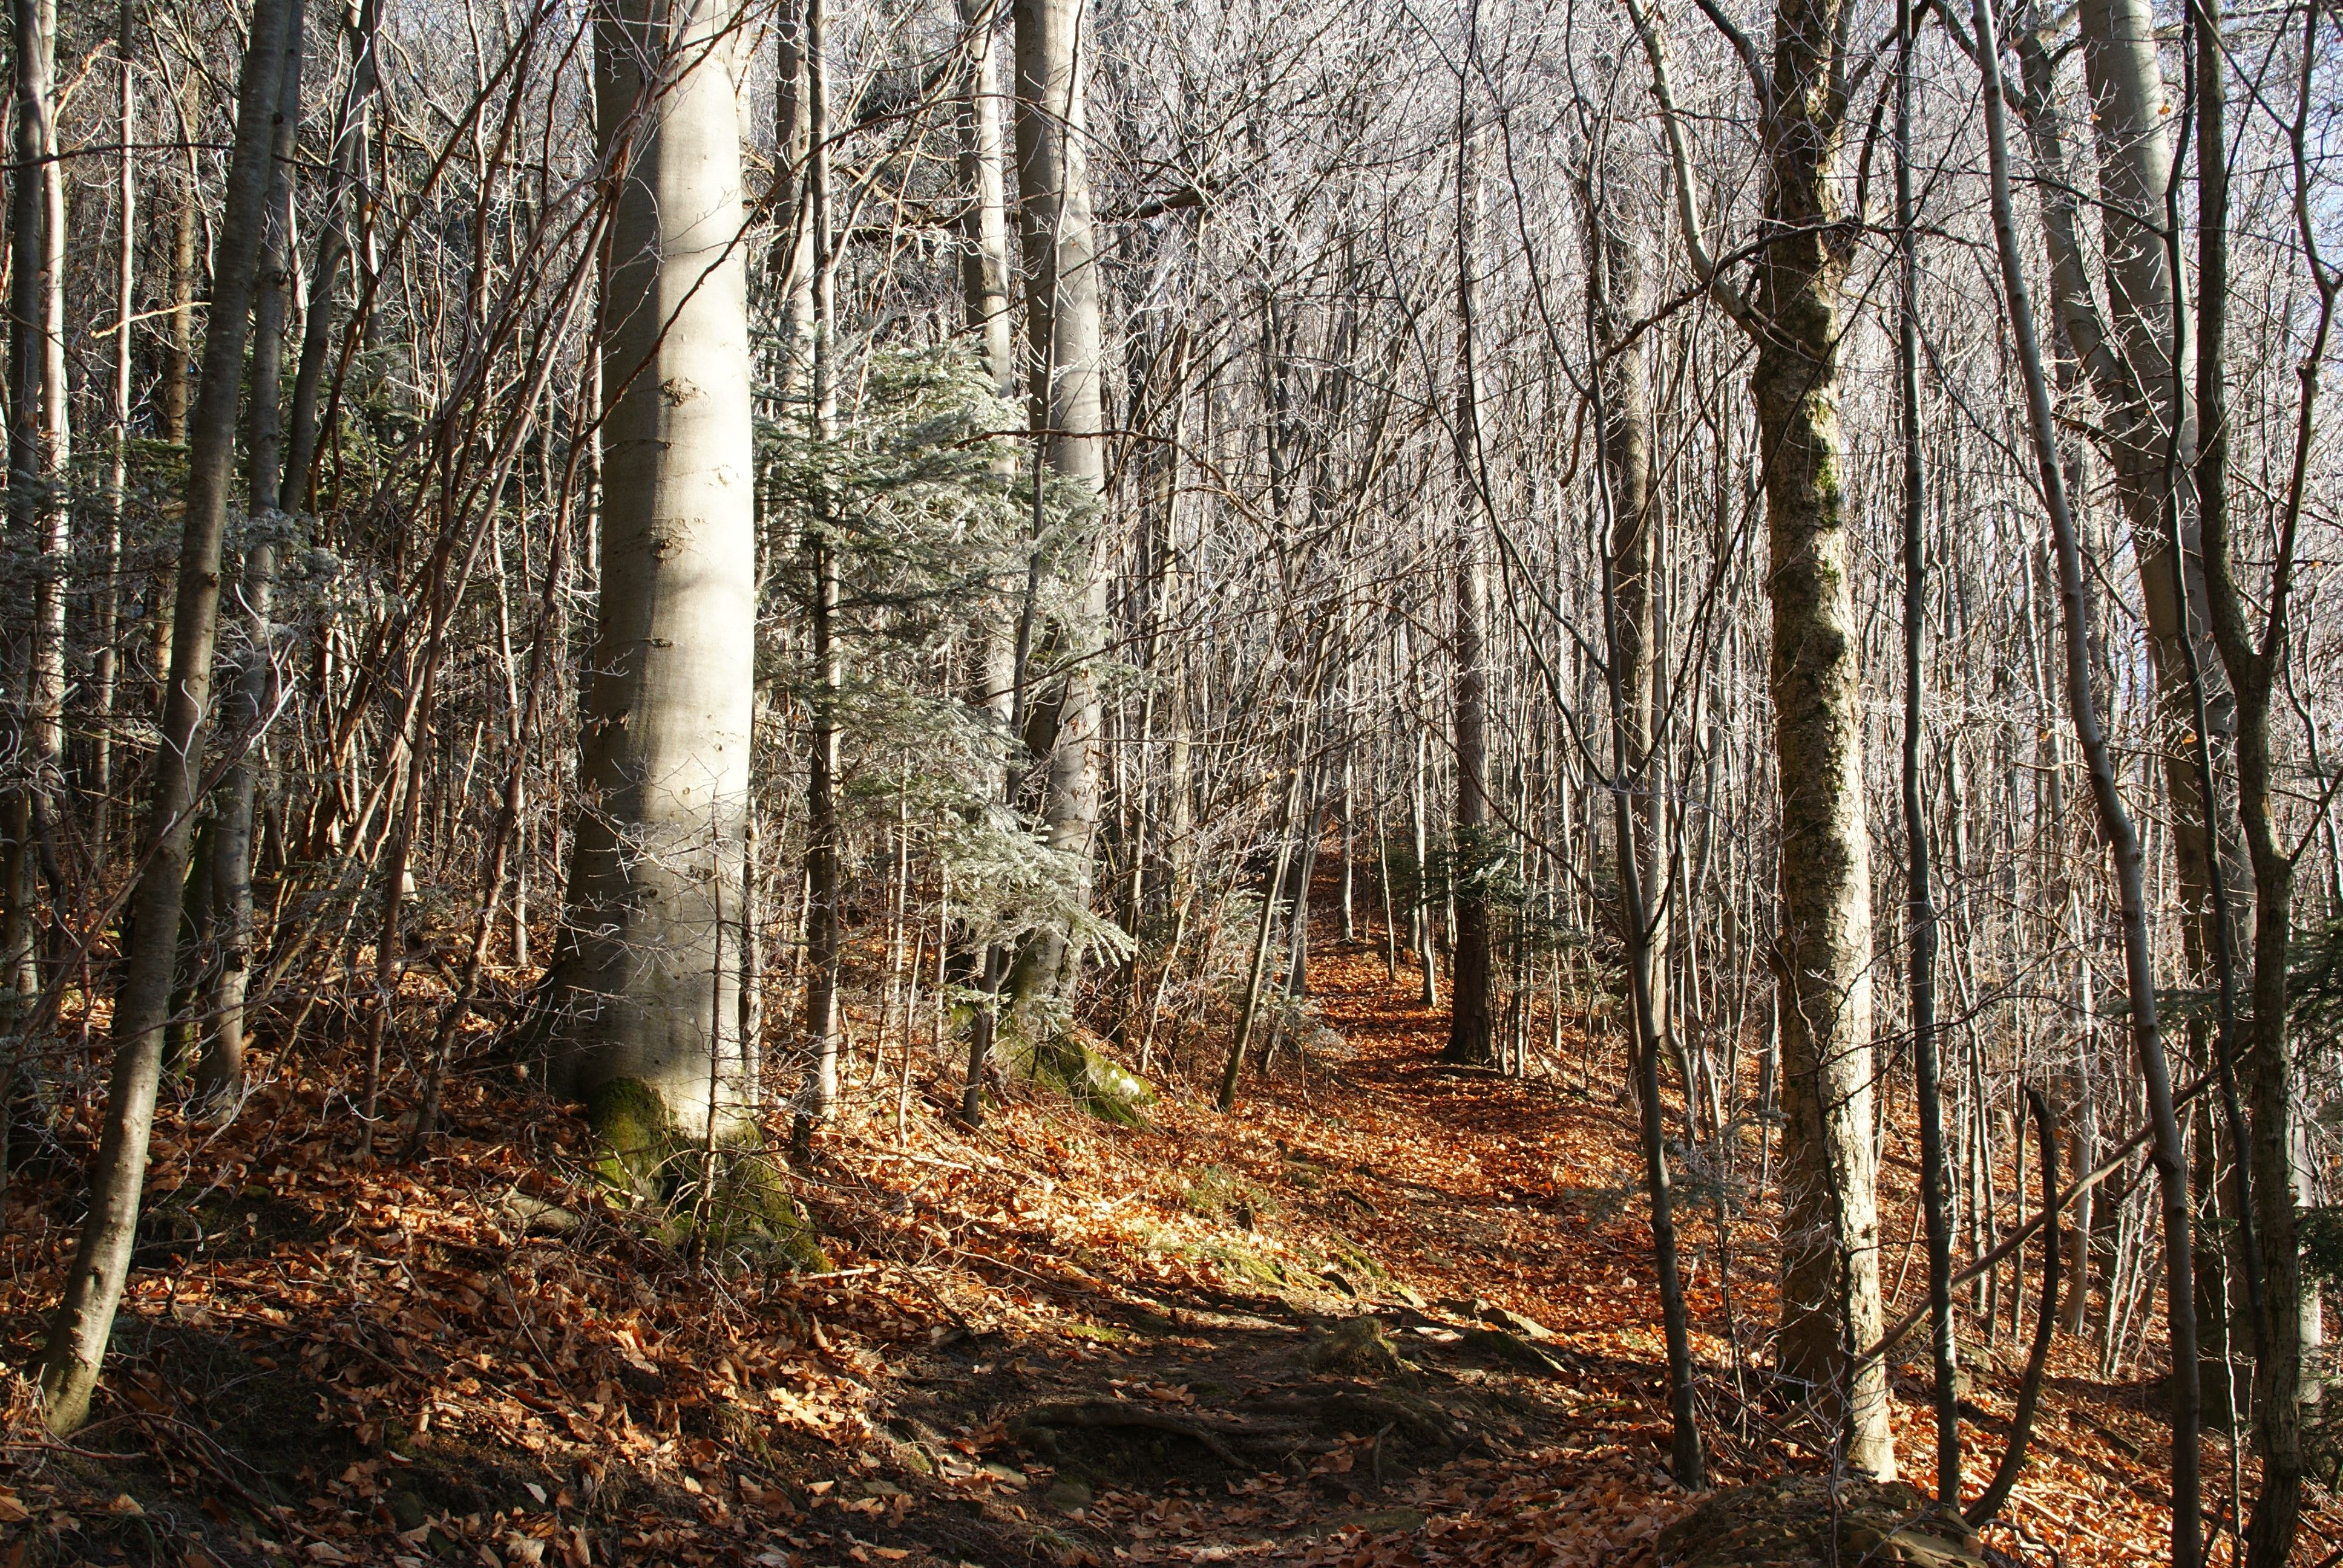 Forrest of leafless trees